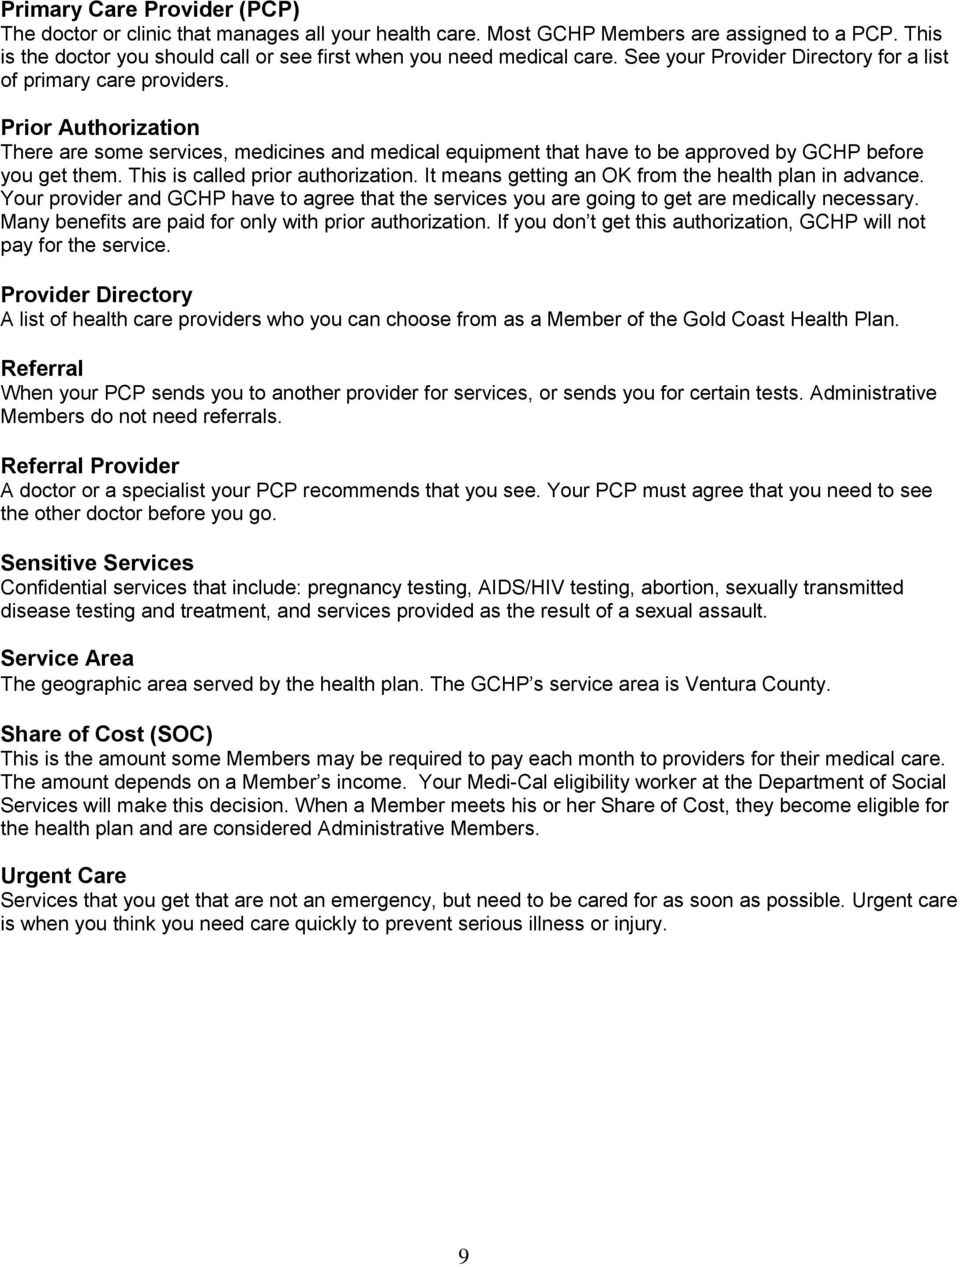 Member Handbook  For questions and Gold Coast Health Plan